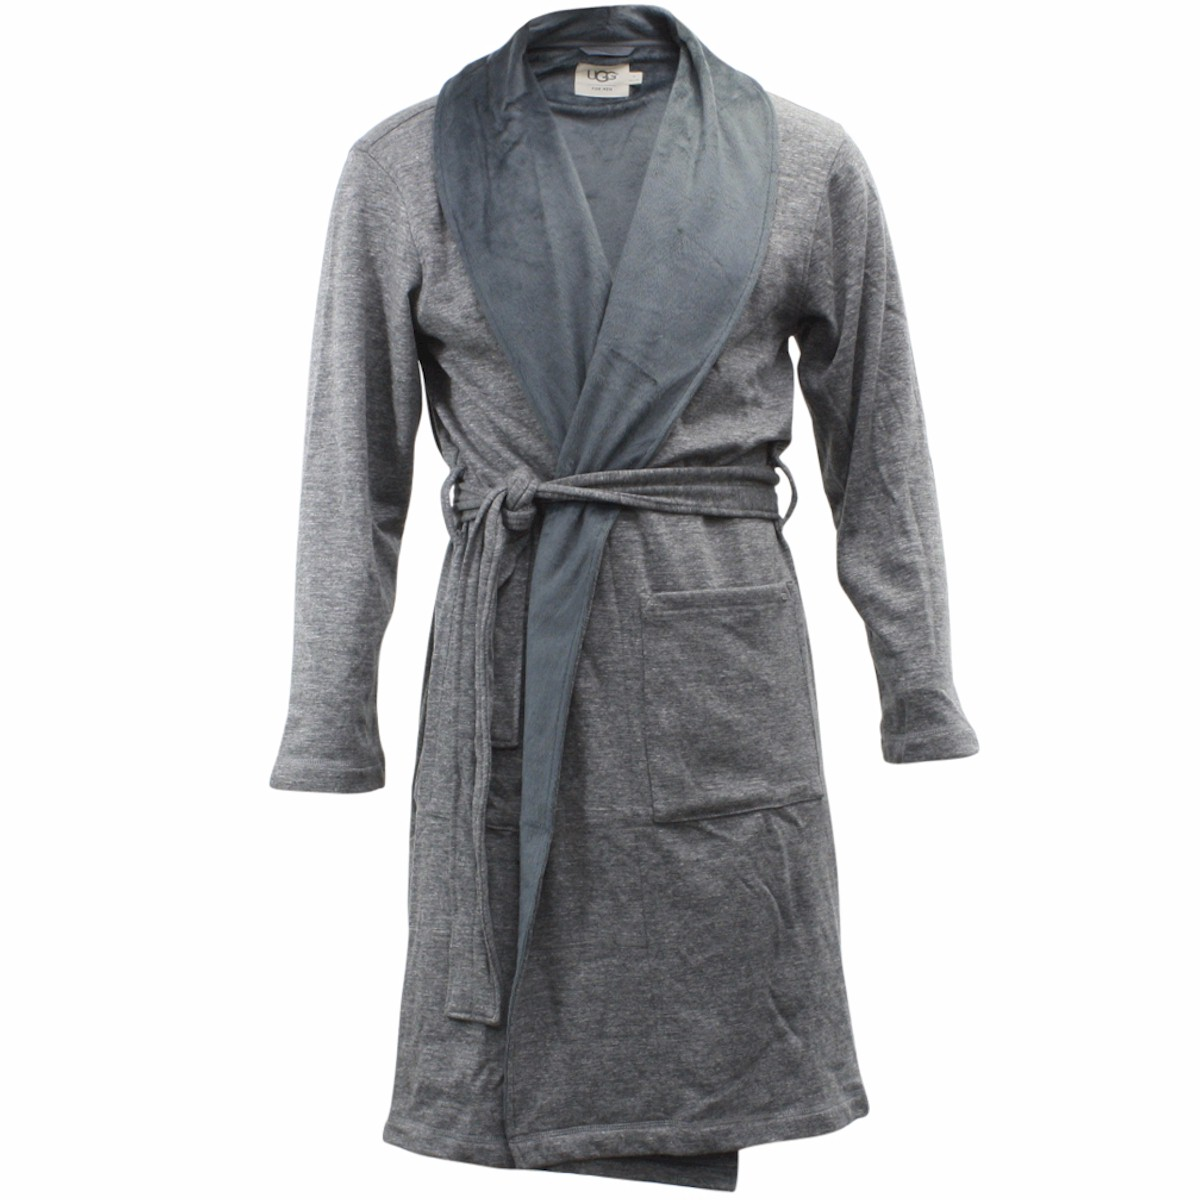 Image of Ugg Men's Robinson Relaxed Fit Fleece Lined Robe - Grey - X Large